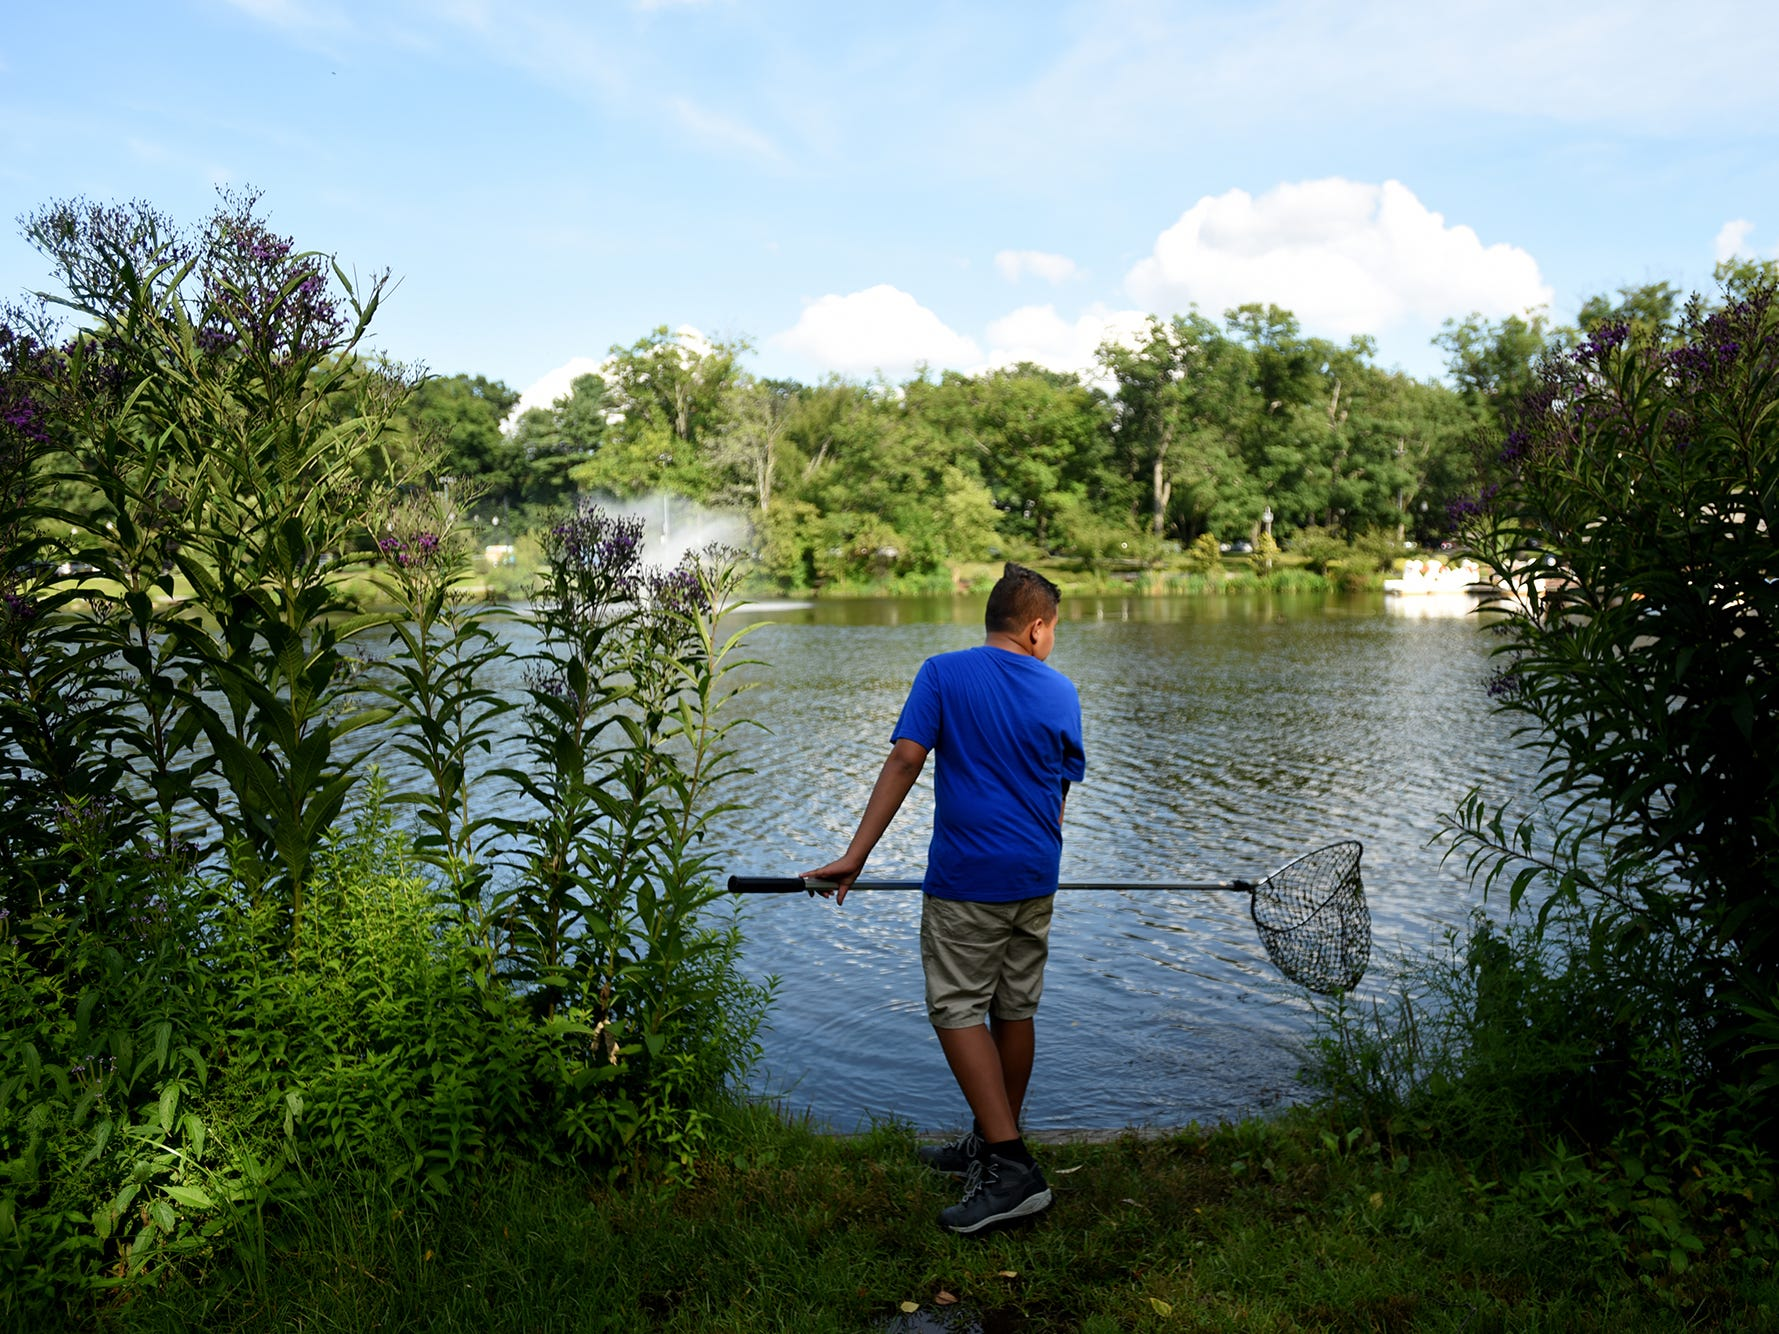 Sam Ibold, 12, is sometimes harassed for catching frogs in Verona Lake. Shown in Verona, NJ on Wednesday August 1, 2018.